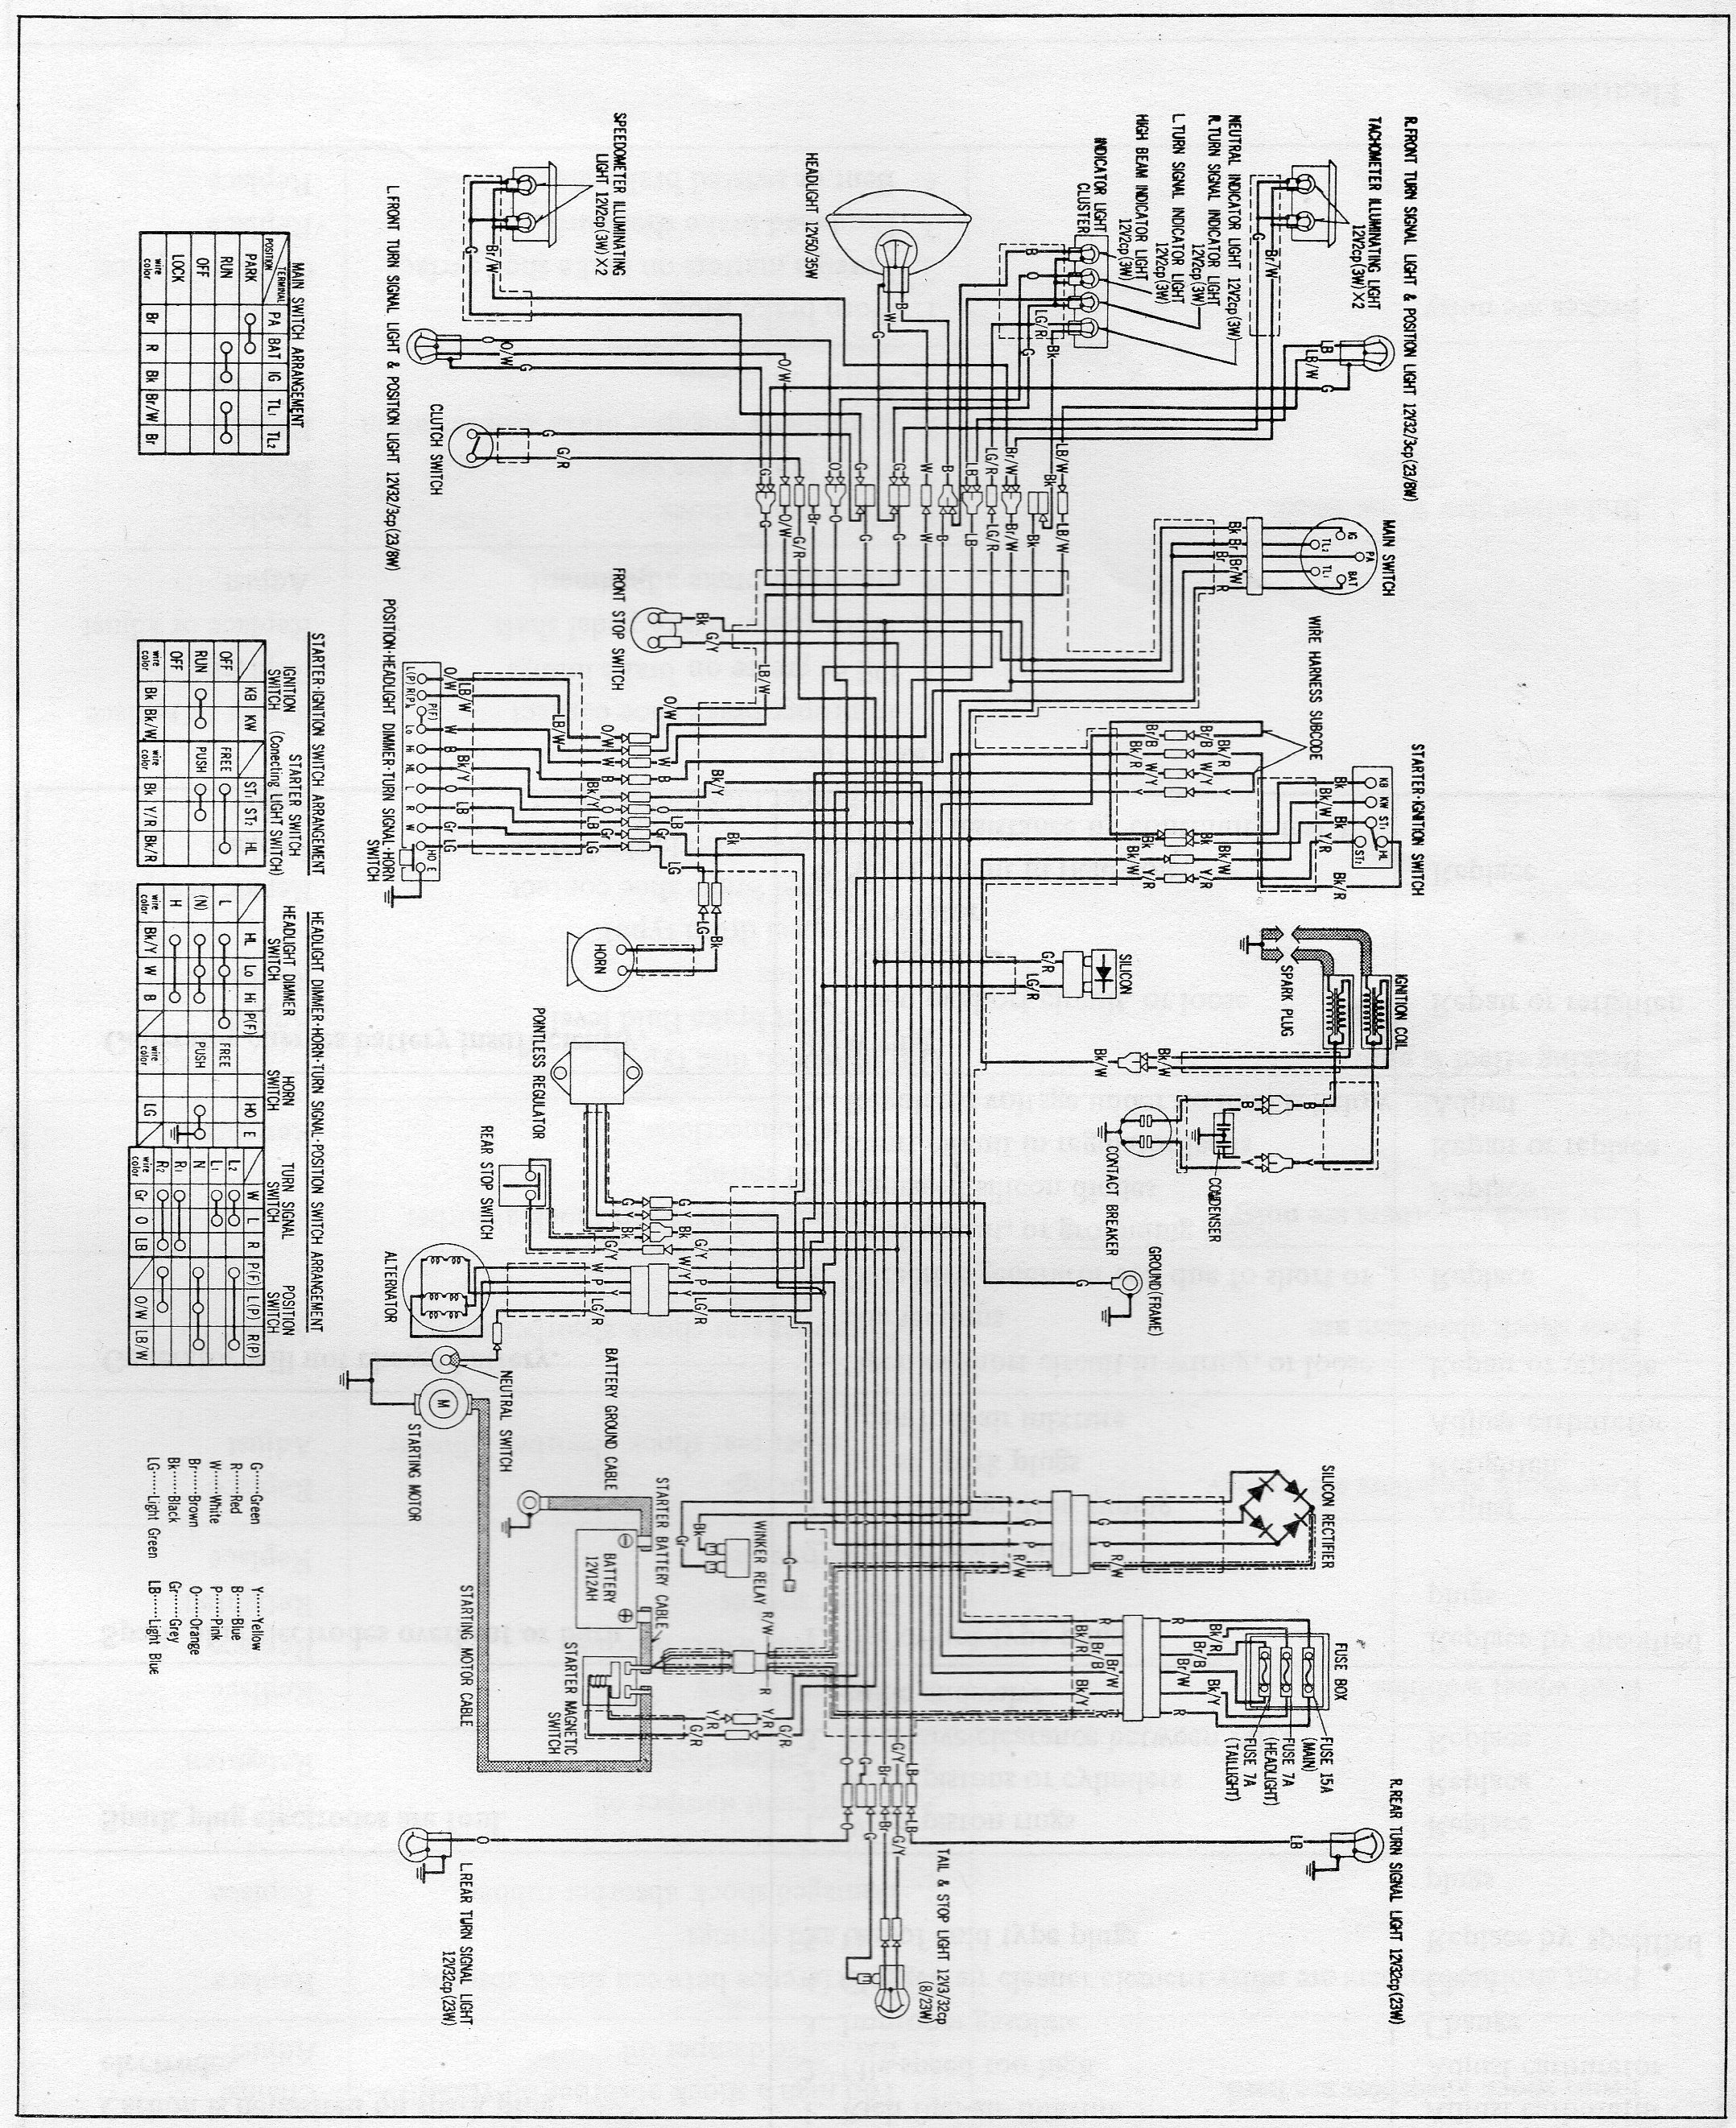 Nissan Vq25 Wiring Diagram Wiring Diagram Resource Resource Led Illumina It